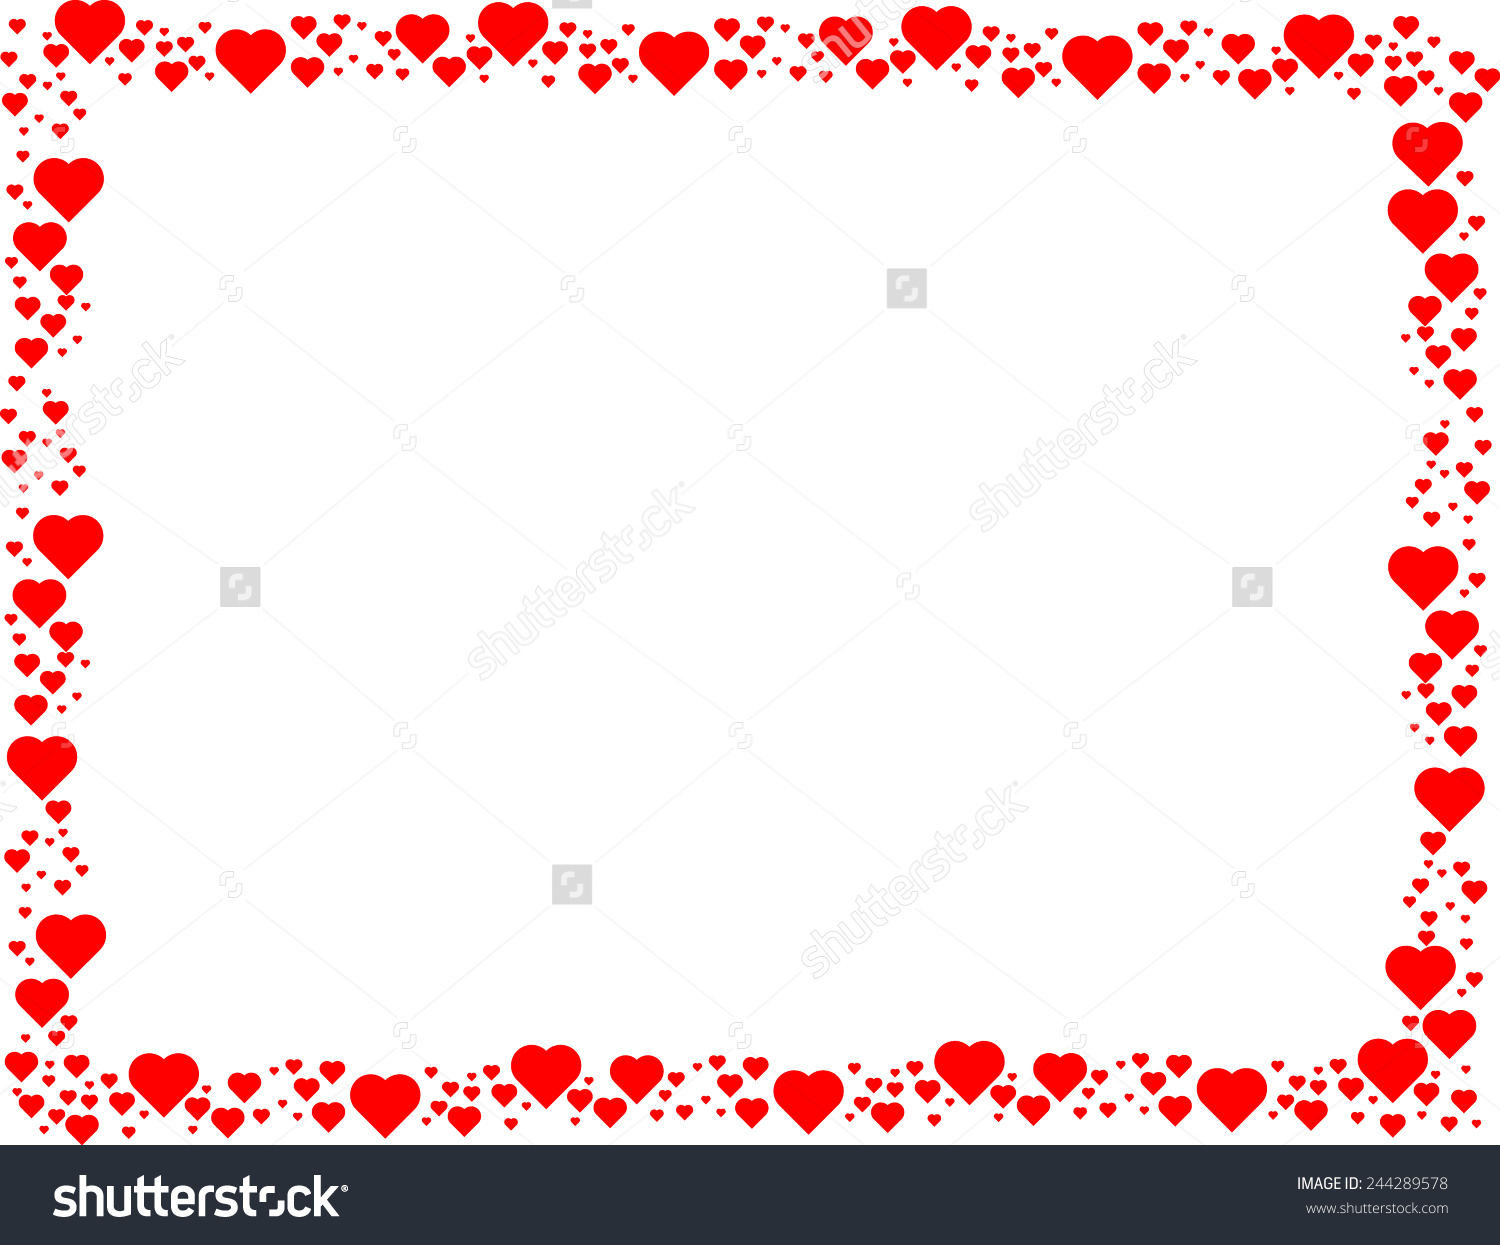 8 Valentine\'s Day Frame Vector Images - Valentine\'s Day Frame Vector ...